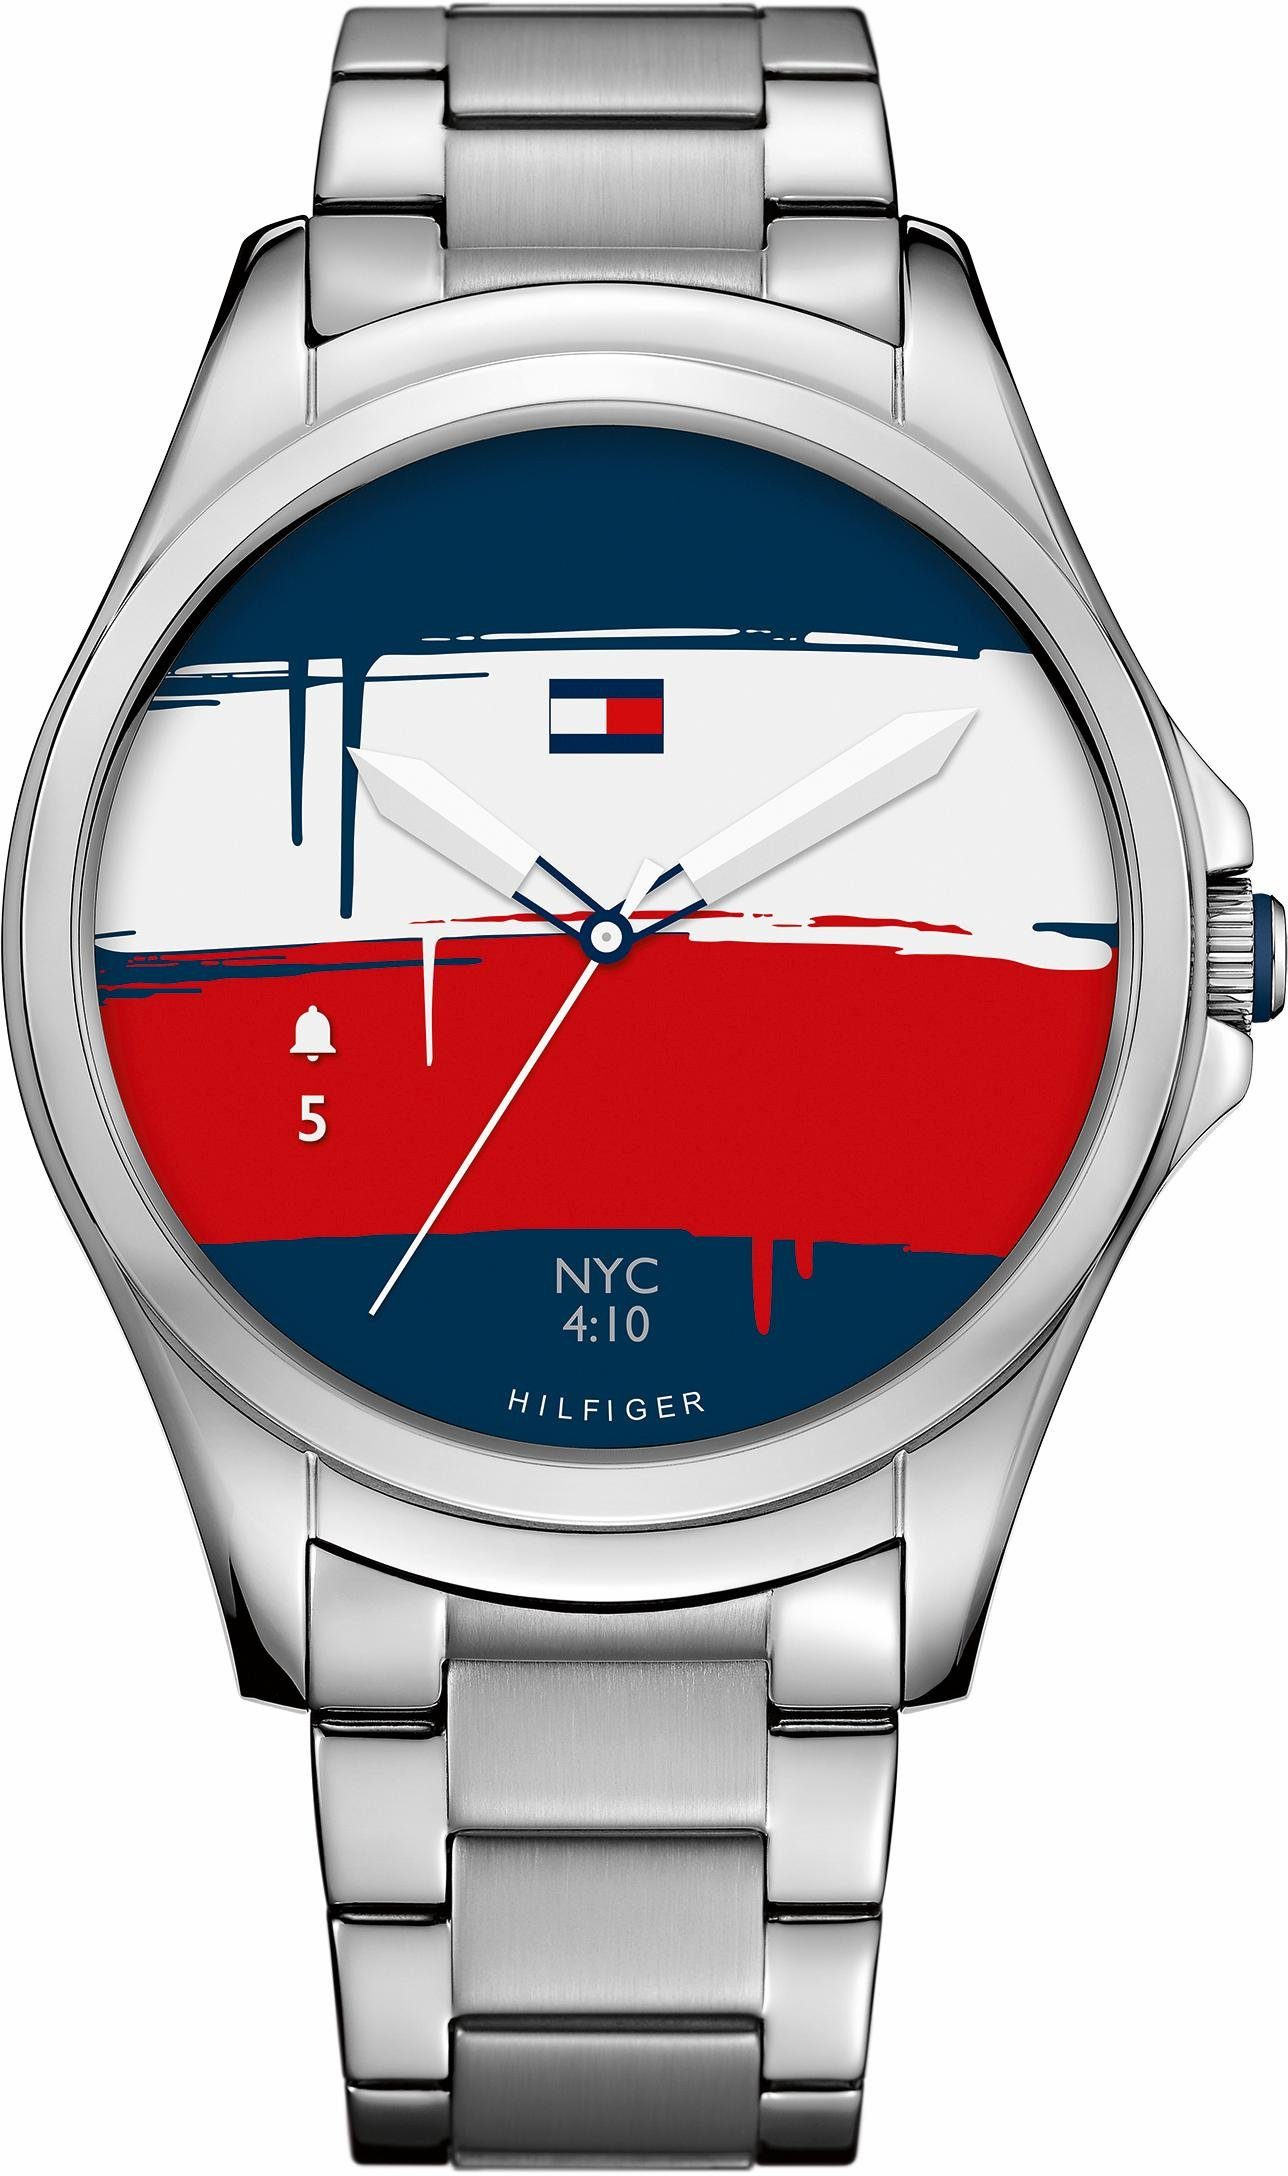 Tommy Hilfiger TH 24/7 YOU, 1791405 Smartwatch (Android Wear)